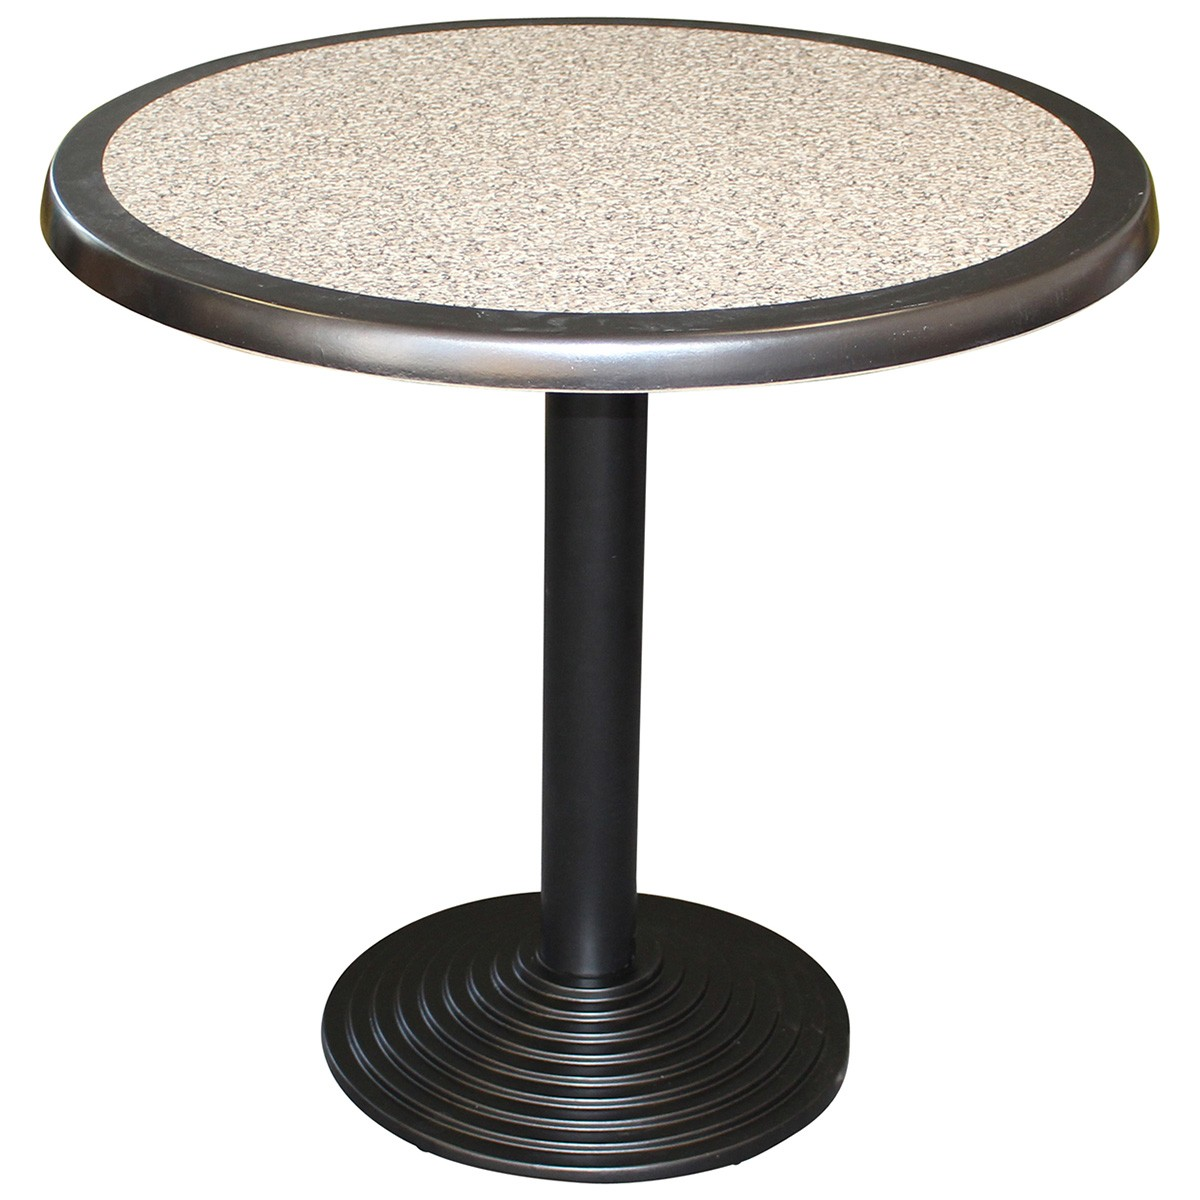 Cascina Commercial Grade Round Dining Table, 80cm, Pebble / Black